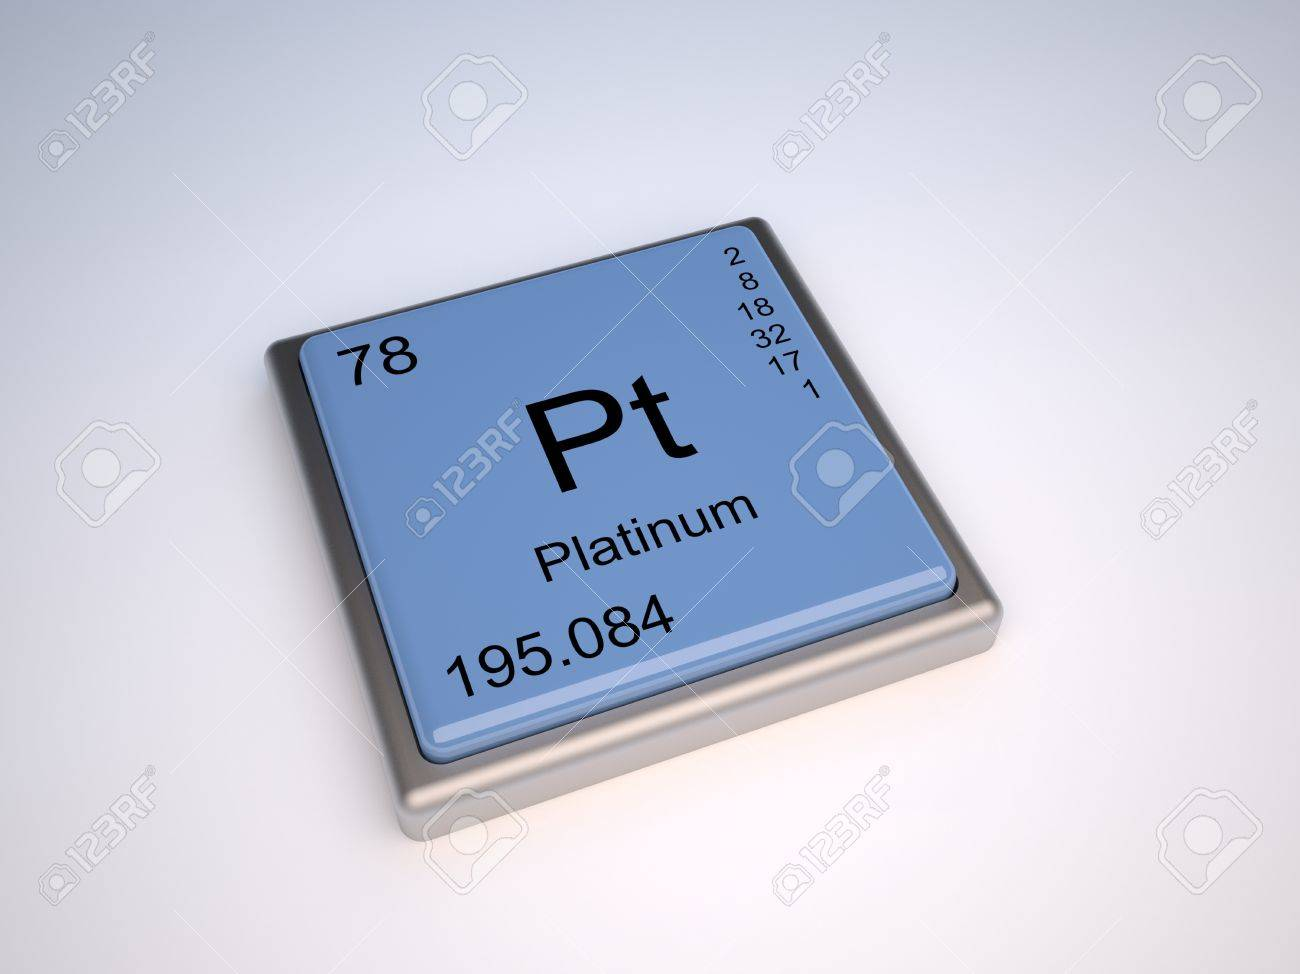 Pt periodic table images periodic table images platinum chemical element of the periodic table with symbol pt platinum chemical element of the periodic gamestrikefo Choice Image